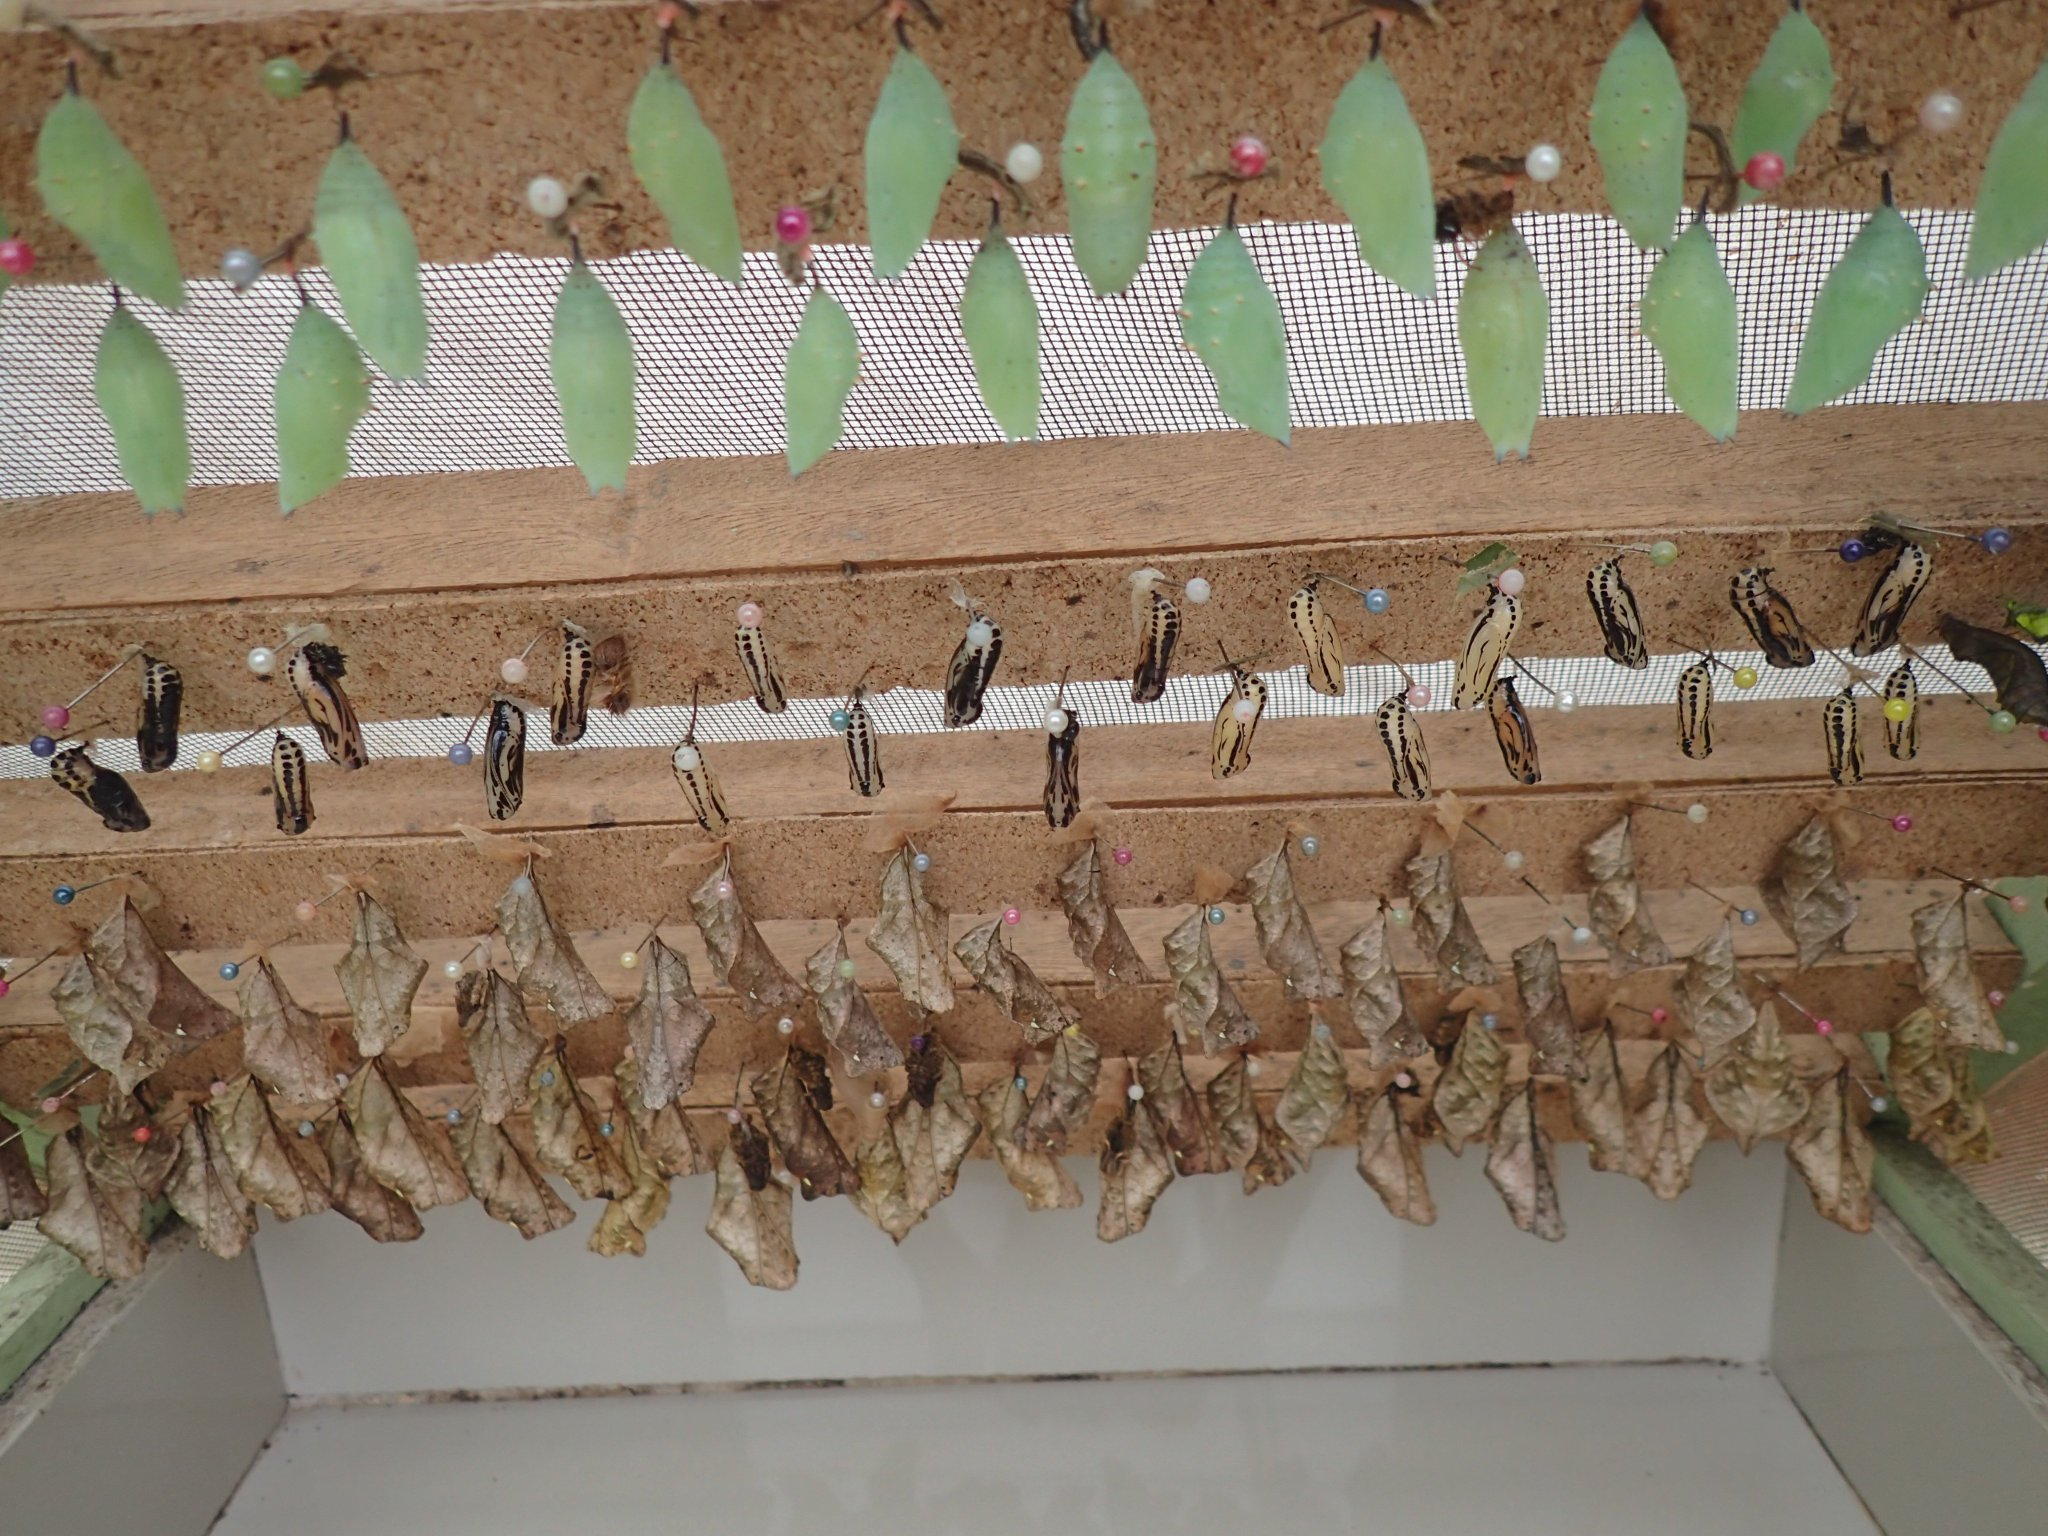 Today's crop of chrysalises at the butterflyery https://t.co/pi0rF9o0oa